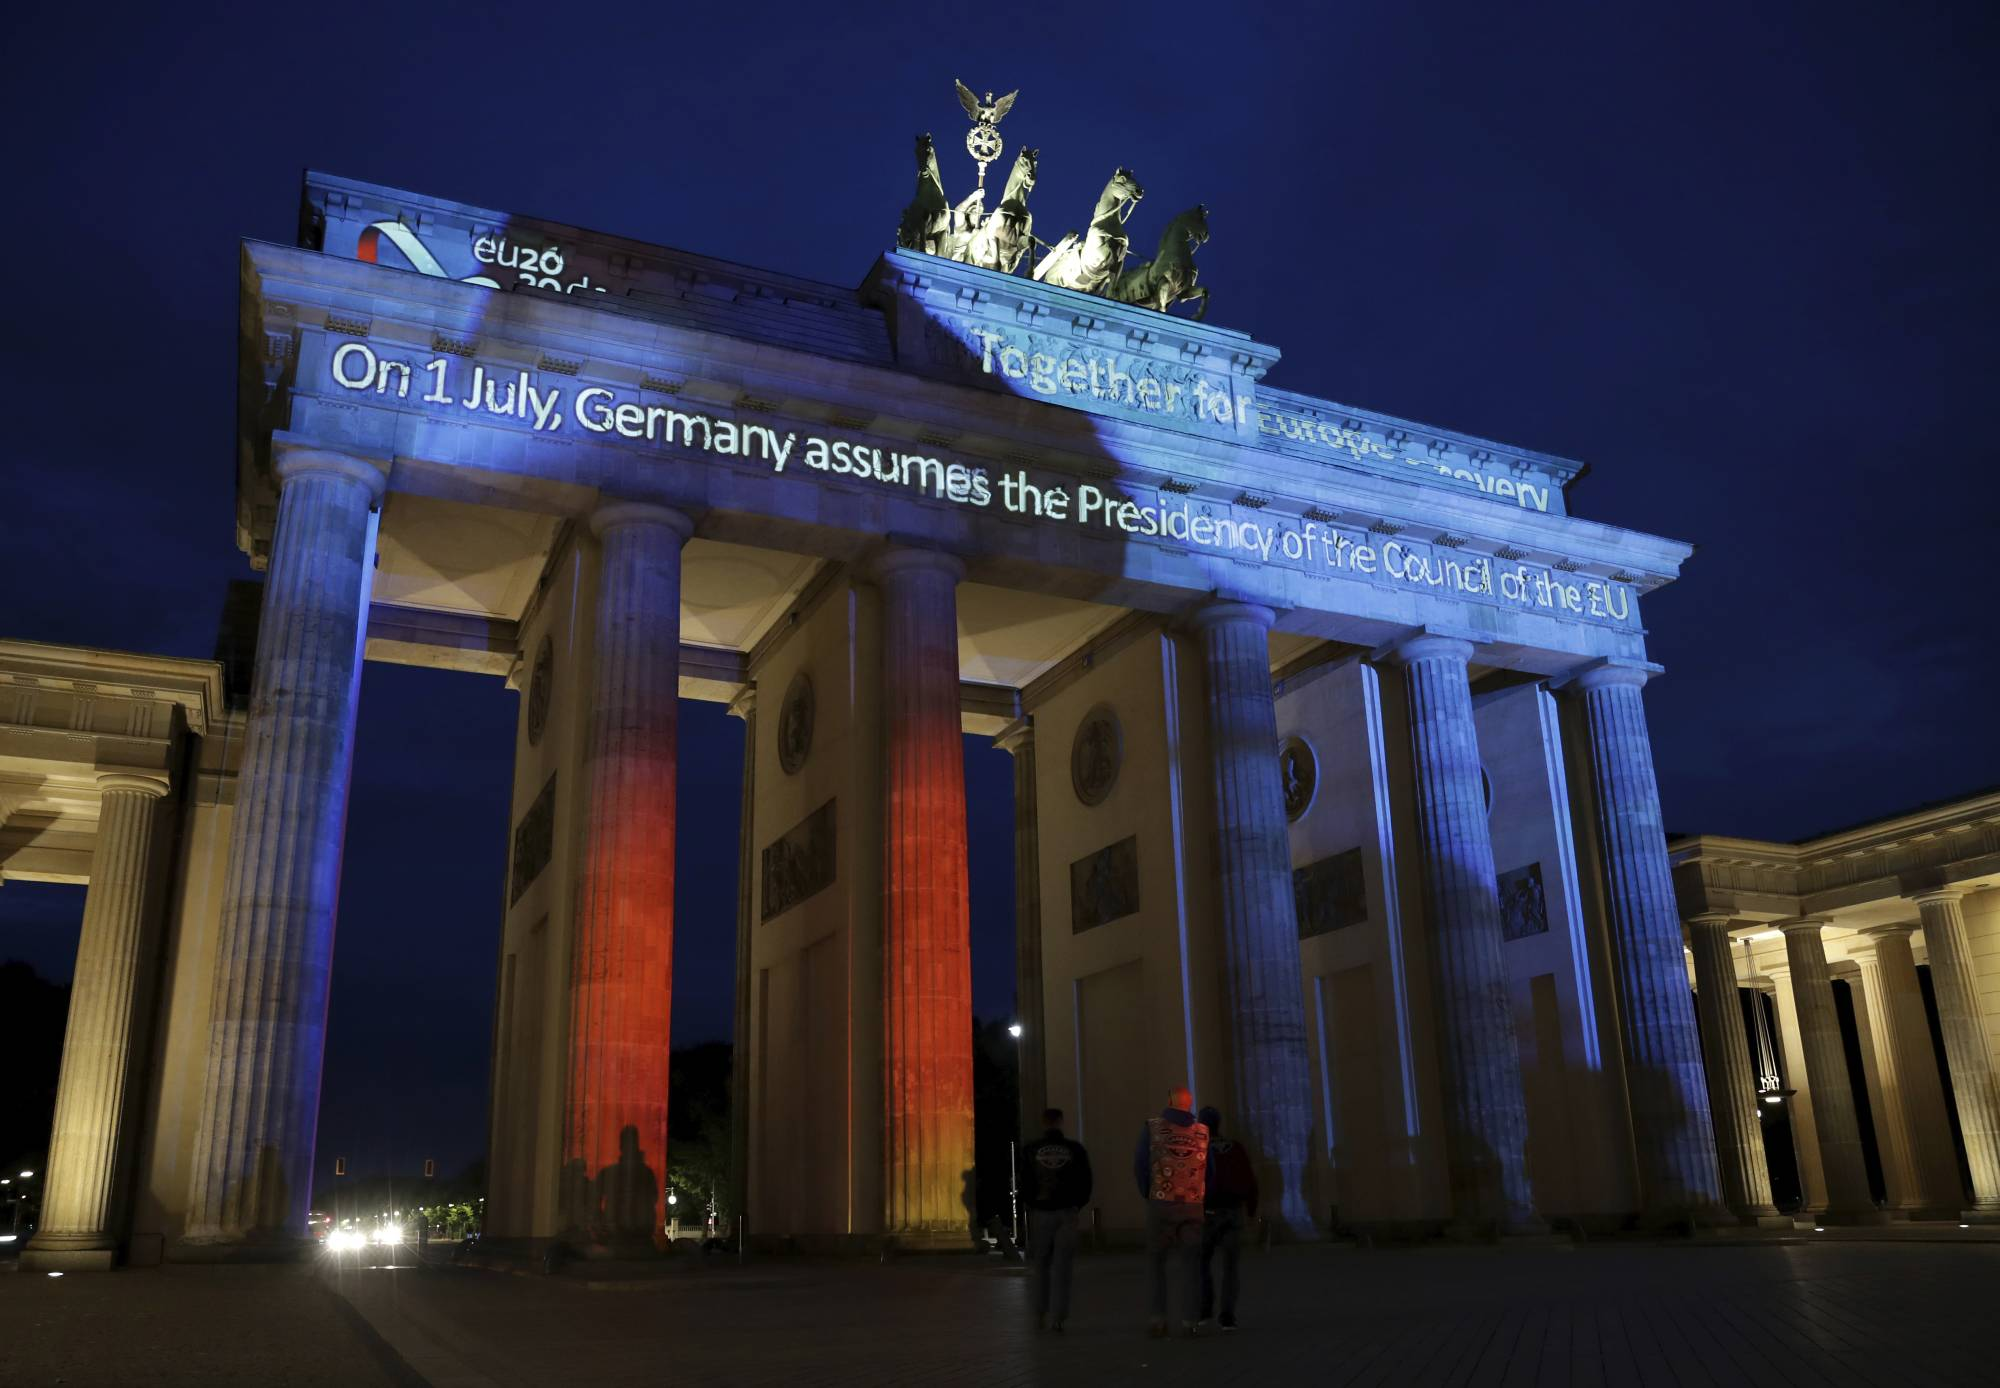 The Brandenburg Gate is illuminated on Monday to mark Germany's July 1 assumption of the EU Council presidency. The European Union's largest economy is taking the chair of the 27-nation bloc amid massive challenges and huge expectations as the continent grapples with the fallout from the coronavirus pandemic. | AP